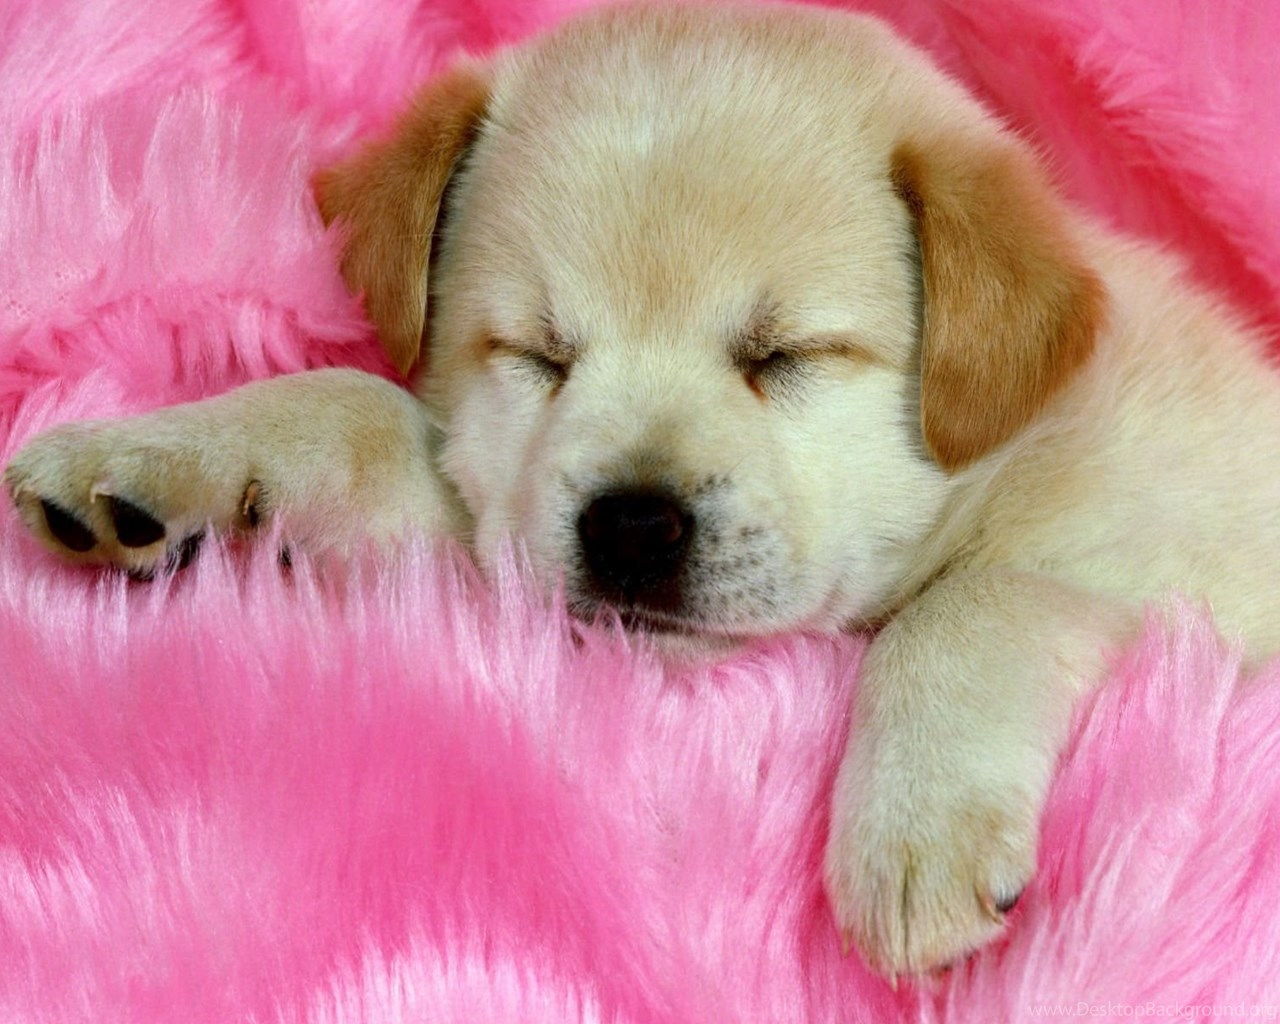 cute baby puppies sleeping wallpaper desktop background